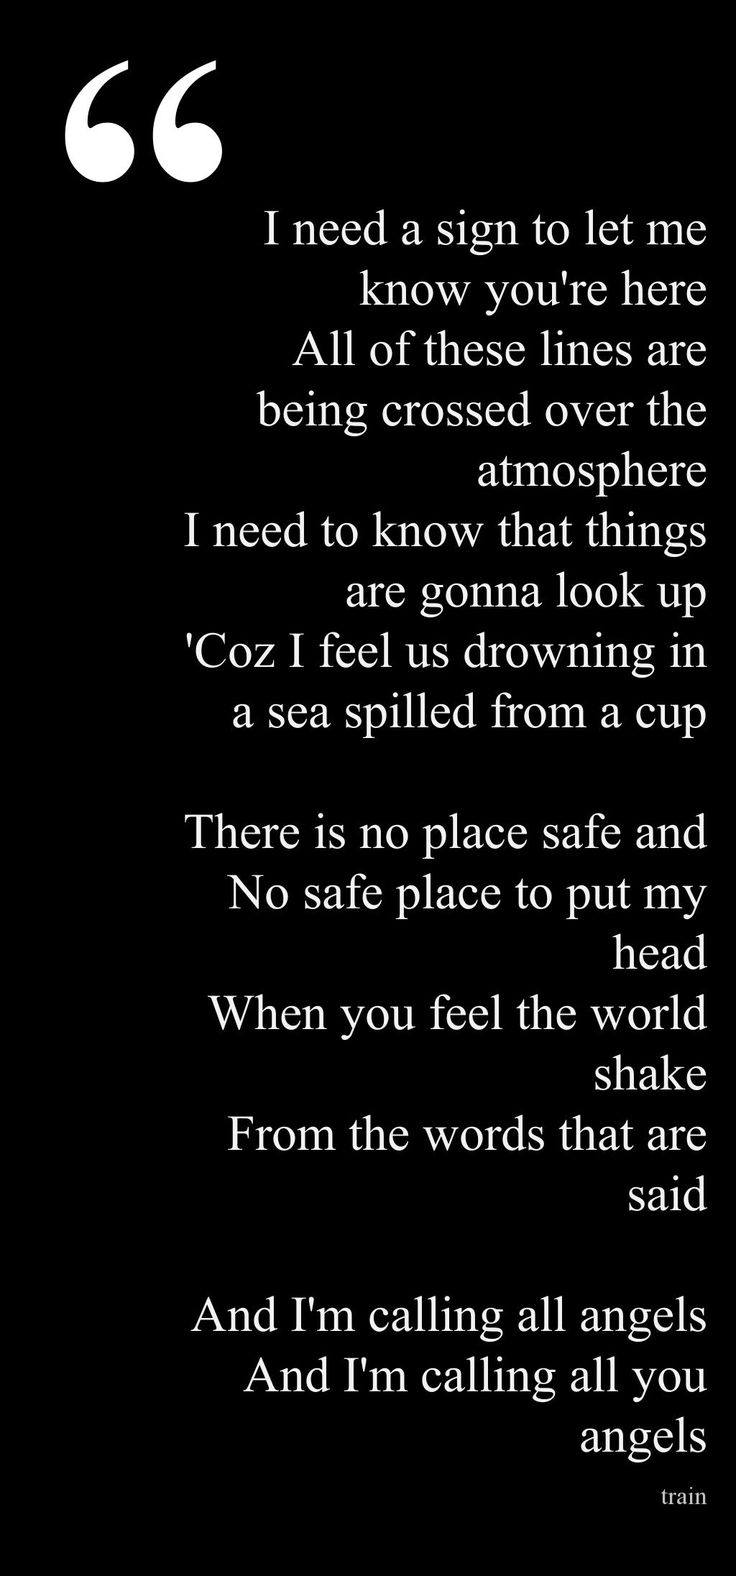 Train - Calling All Angels Lyrics | MetroLyrics